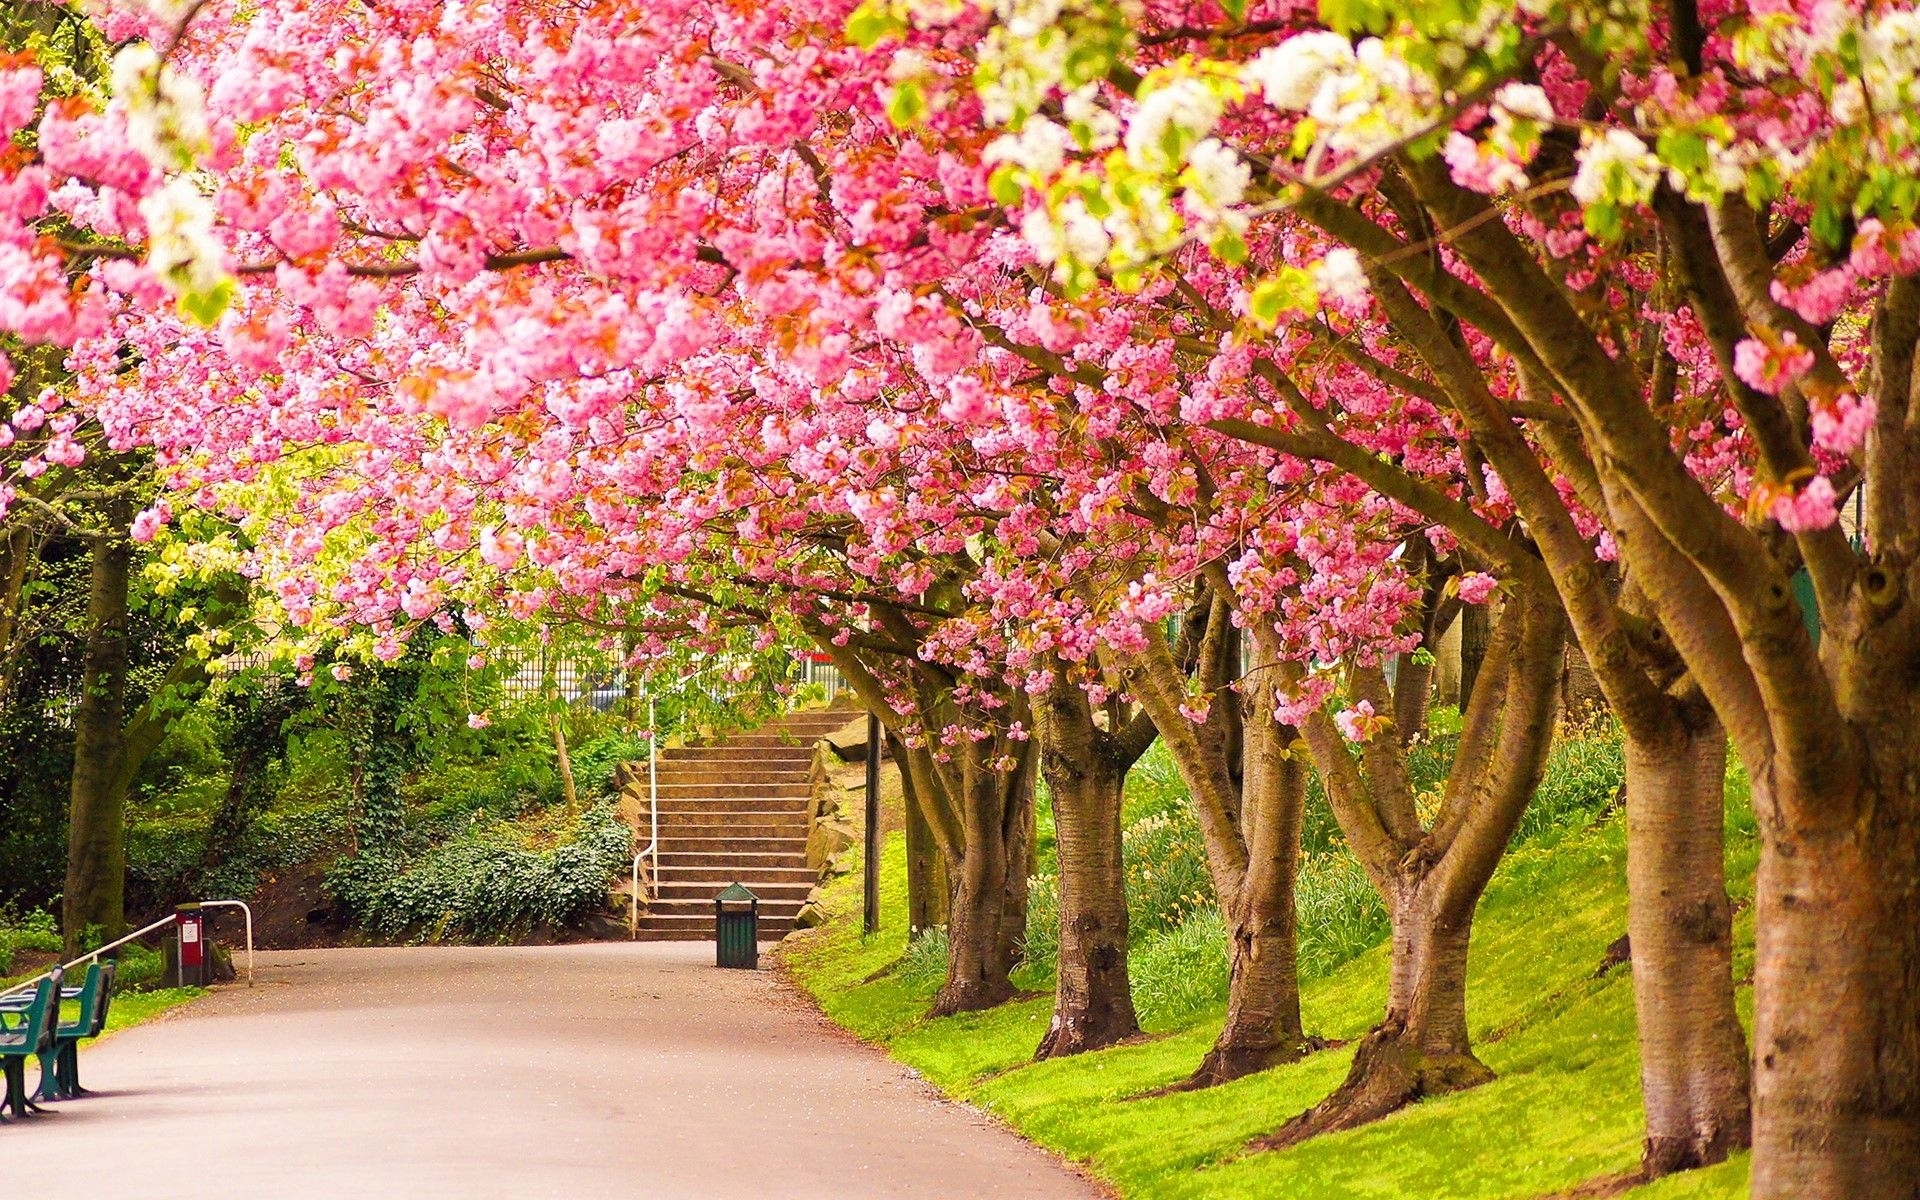 spring nature desktop wallpaper. | bunga | pinterest | nature